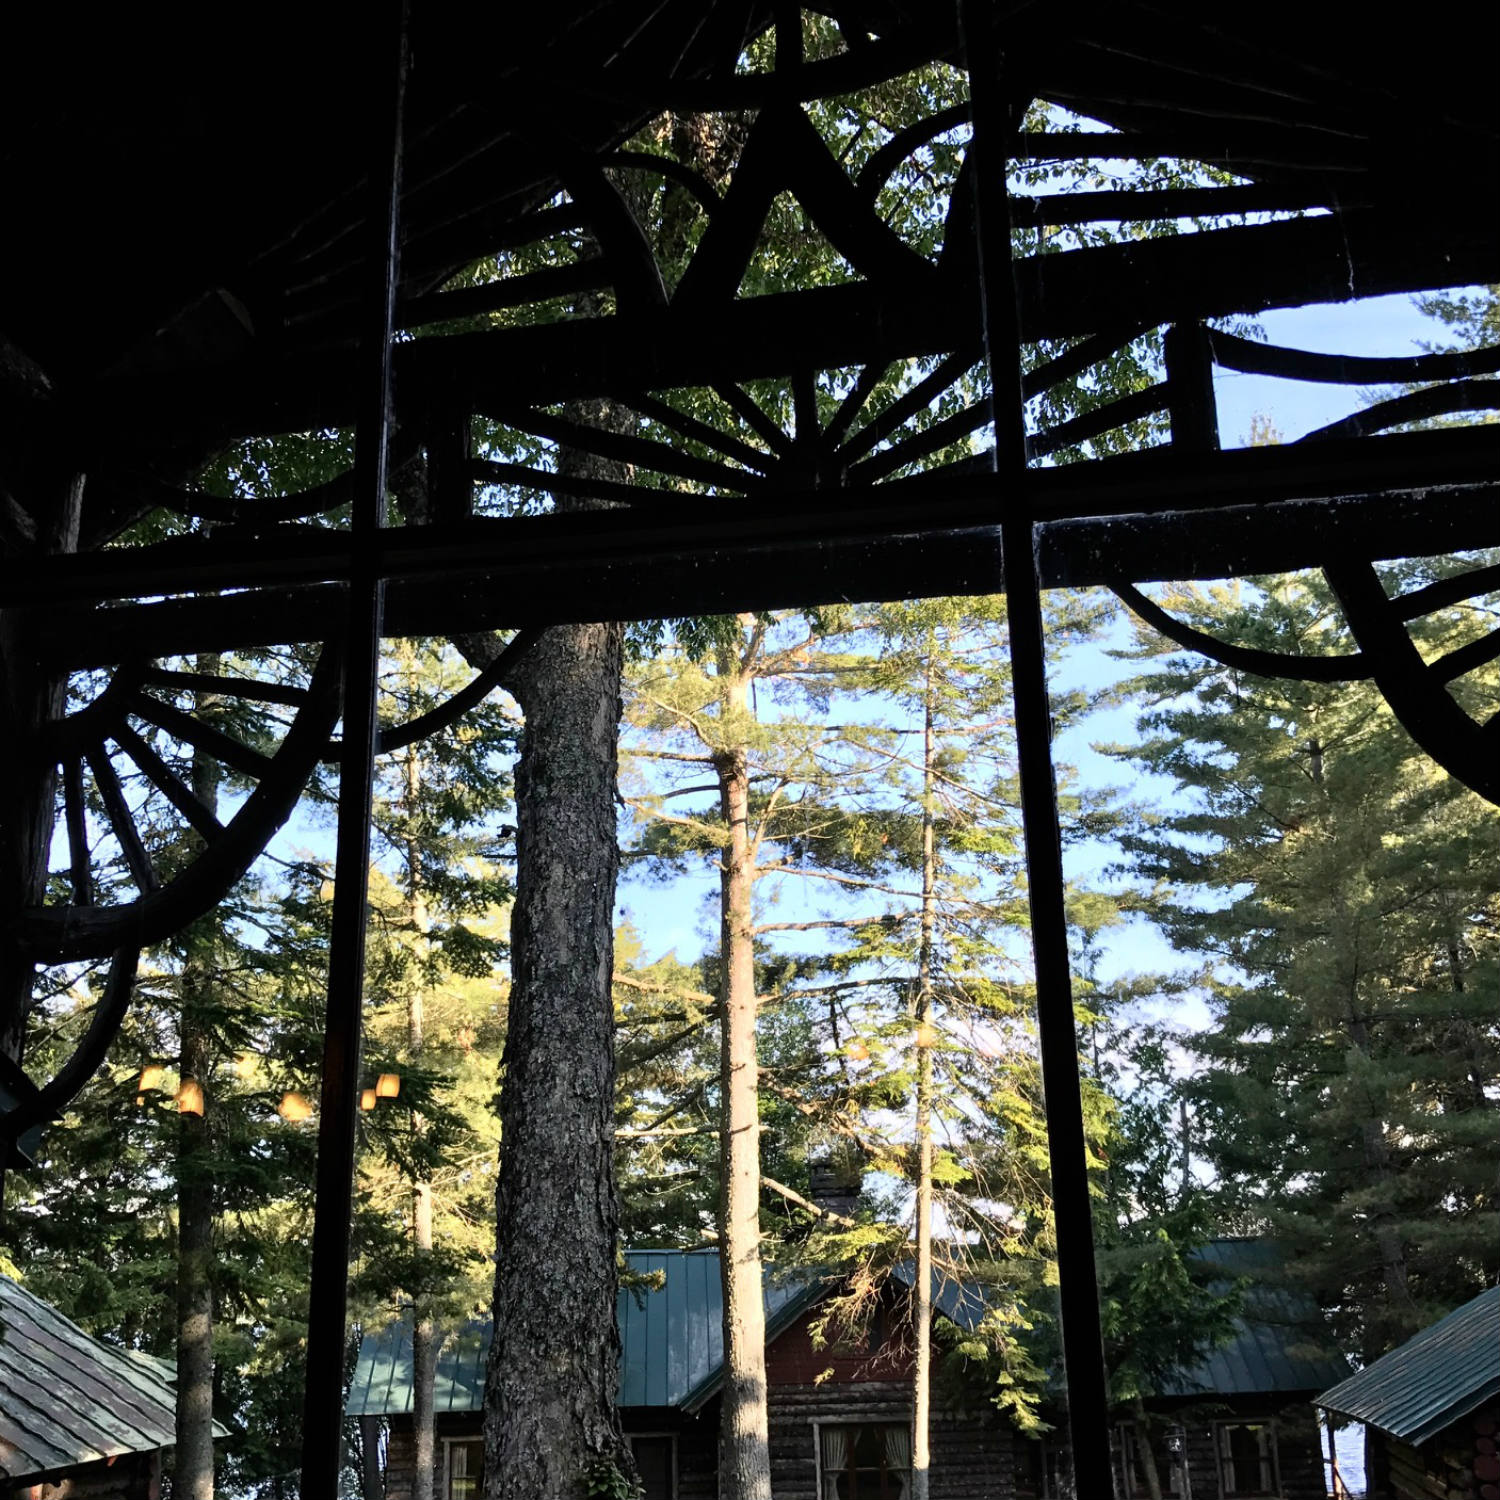 Looking out from the Porch of the Lodge at Camp Pine Knot in the Adirondacks